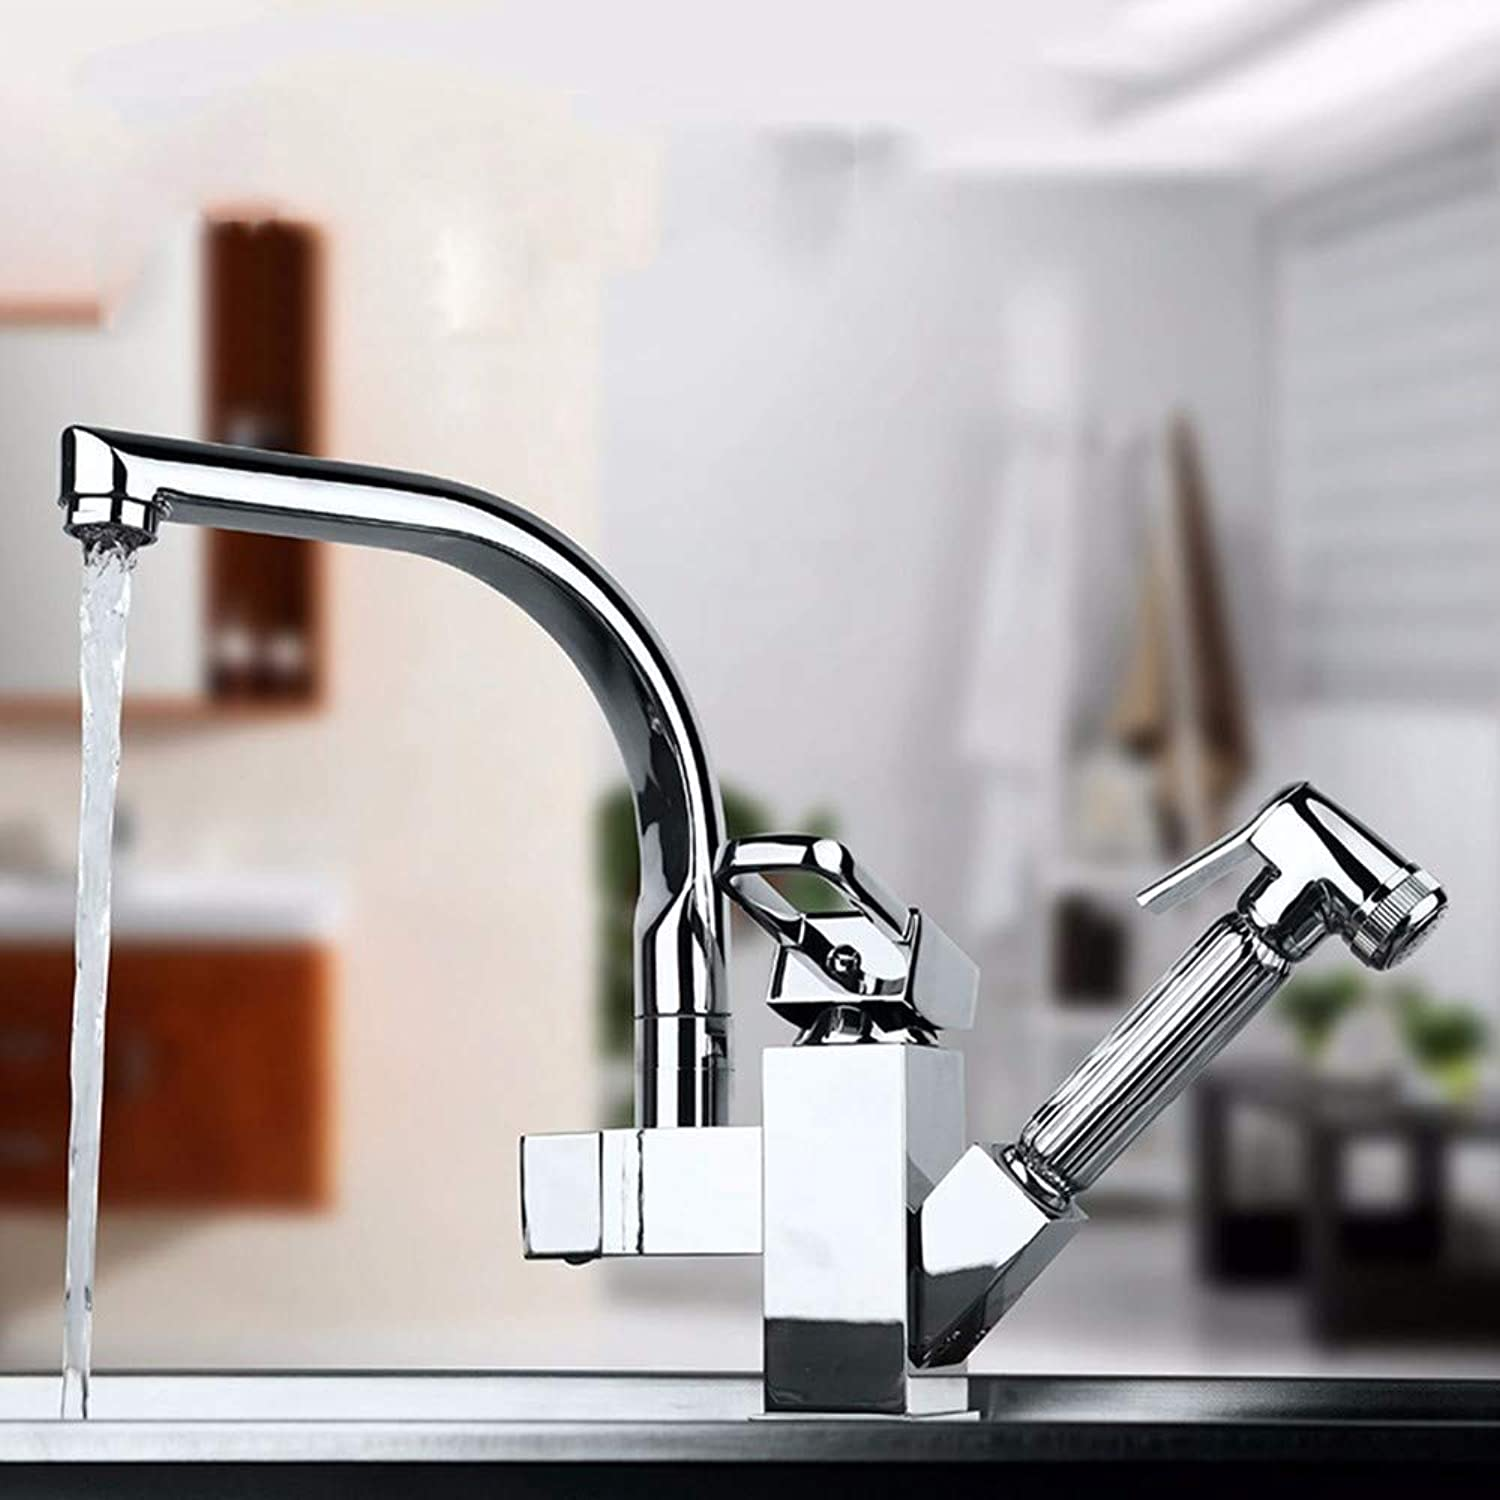 KUNHAN Kitchen Sink Faucet Tap Brass Double Port 360 Degrees And Pull Out The Kitchen Faucet.Kitchen Faucet Sink Mixer